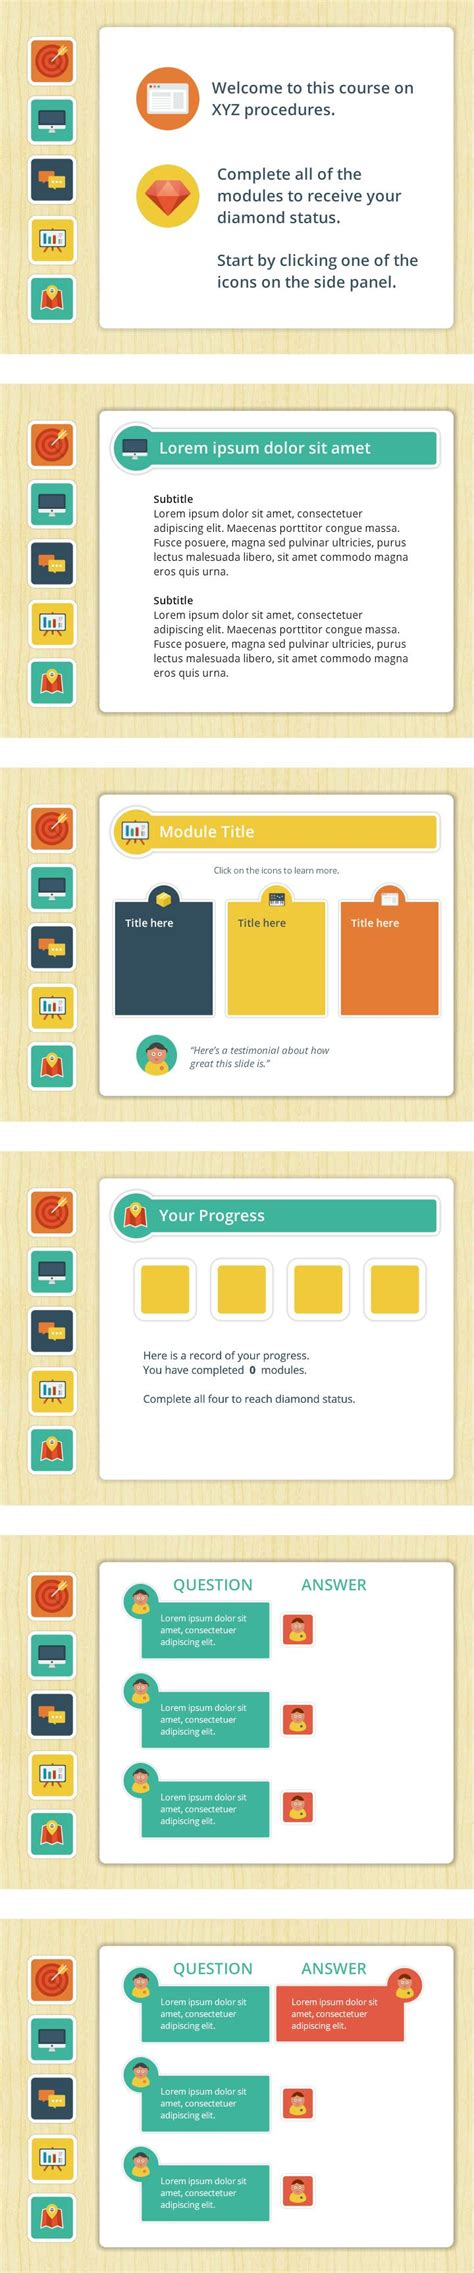 229 Best Images About Elearning Templates On Pinterest Lateral Thinking Crossword Puzzle Elearning Templates Storyline